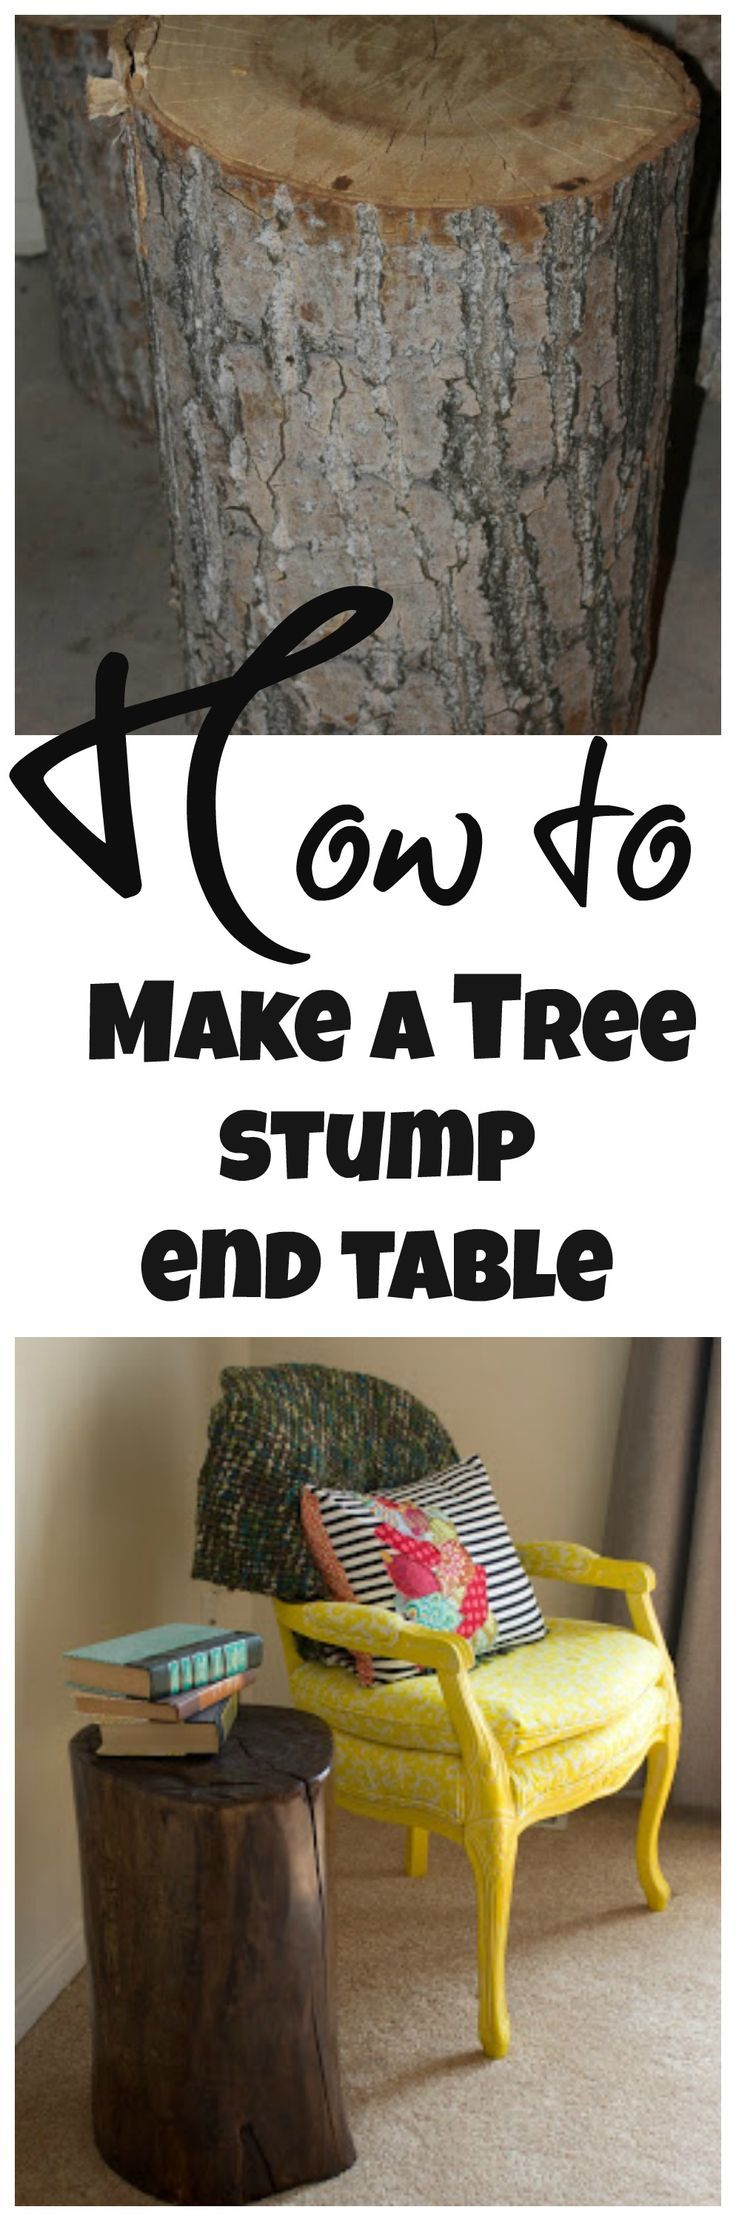 Learn how to turn a tree stump into an end table!